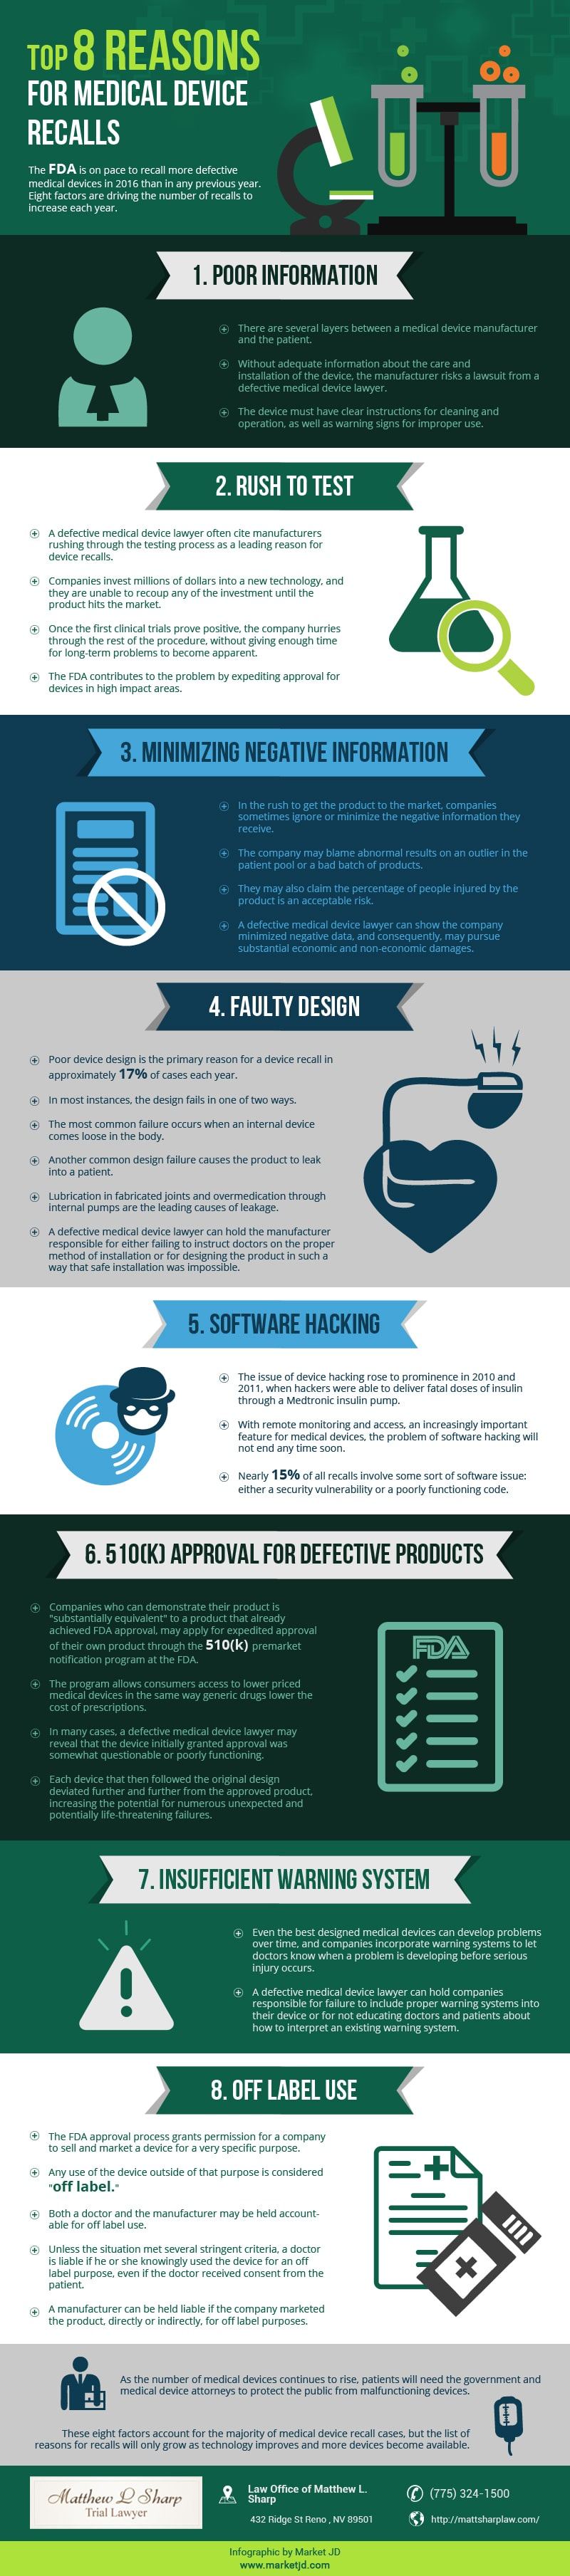 infographic_Top 8 Reasons For Medical Device Recalls